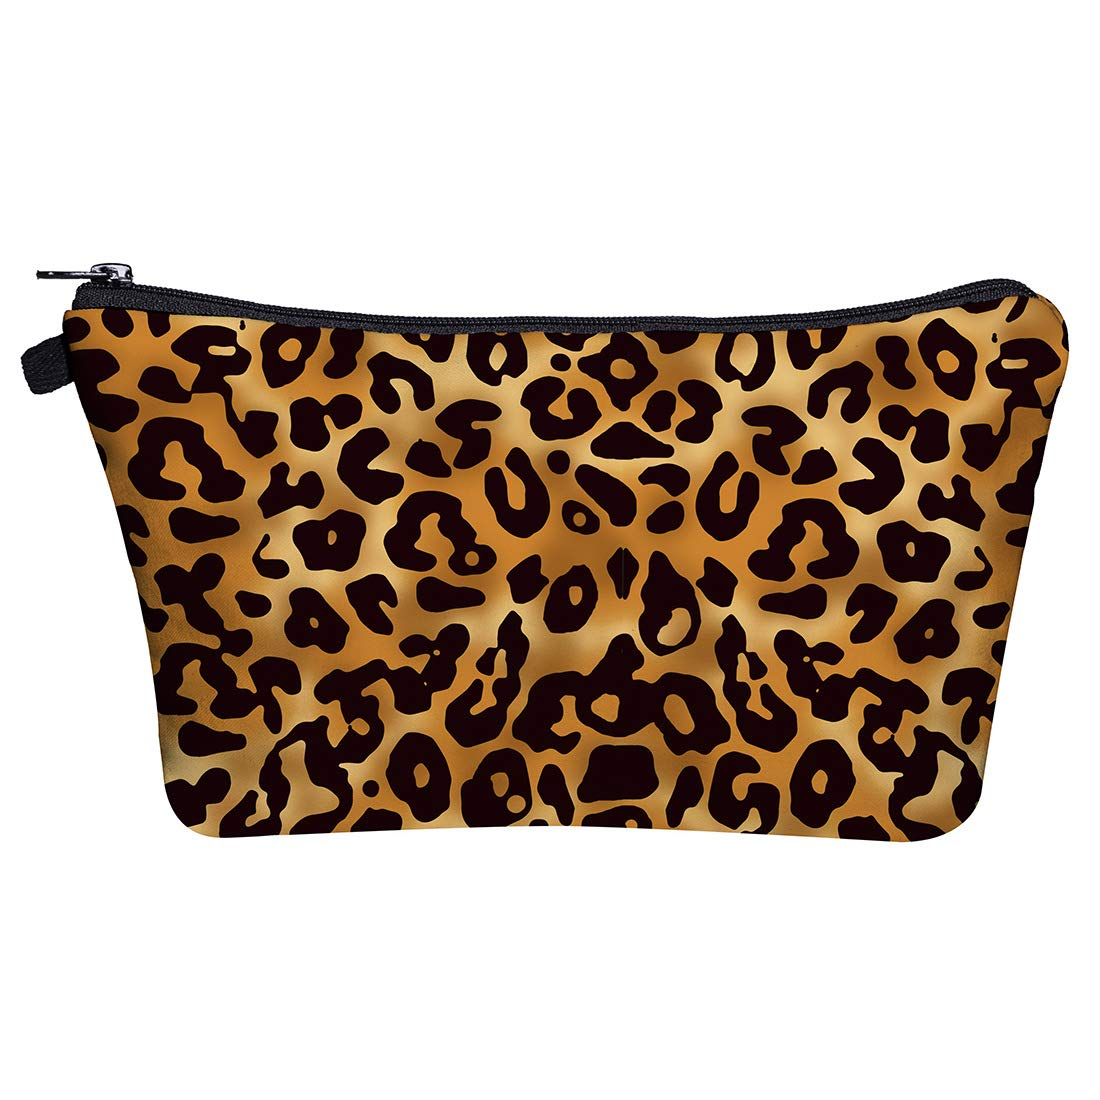 Portable Makeup Bag Organizer Travel 3D Printing Small Cosmetic Bags Zipper Pen Cases Brush Storage Pouch for Women Girls Purse (Leopard)